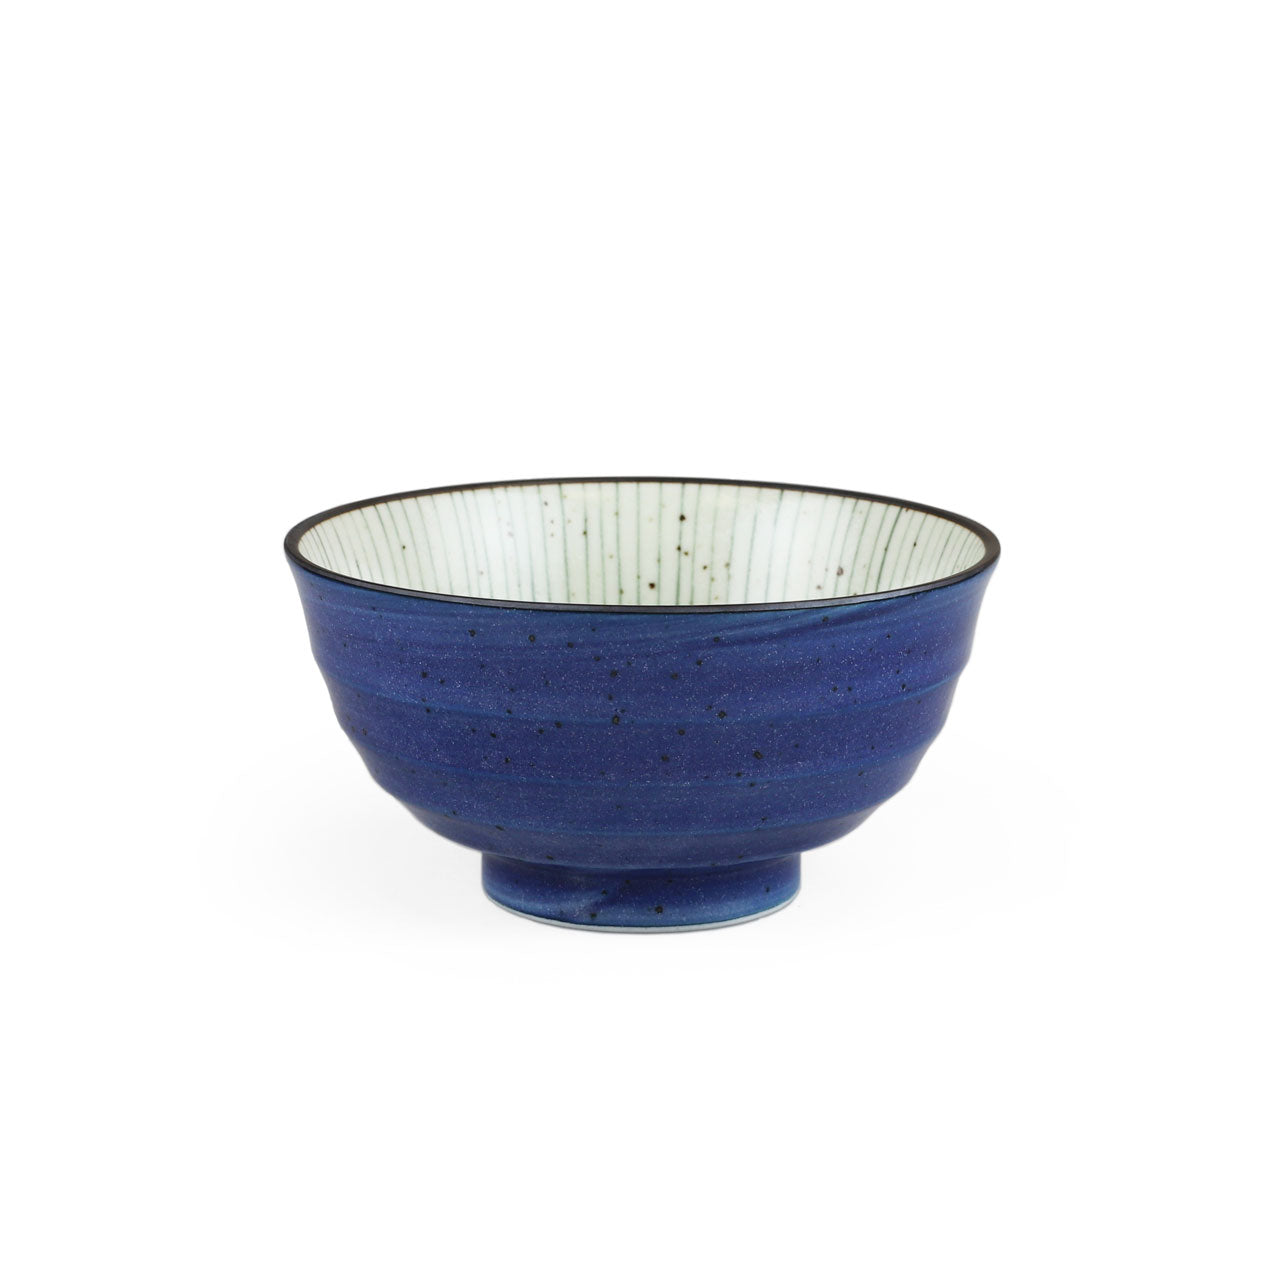 "Tokusa Blue Lined Interior Donburi Bowl 35 fl oz / 6.73"" dia"